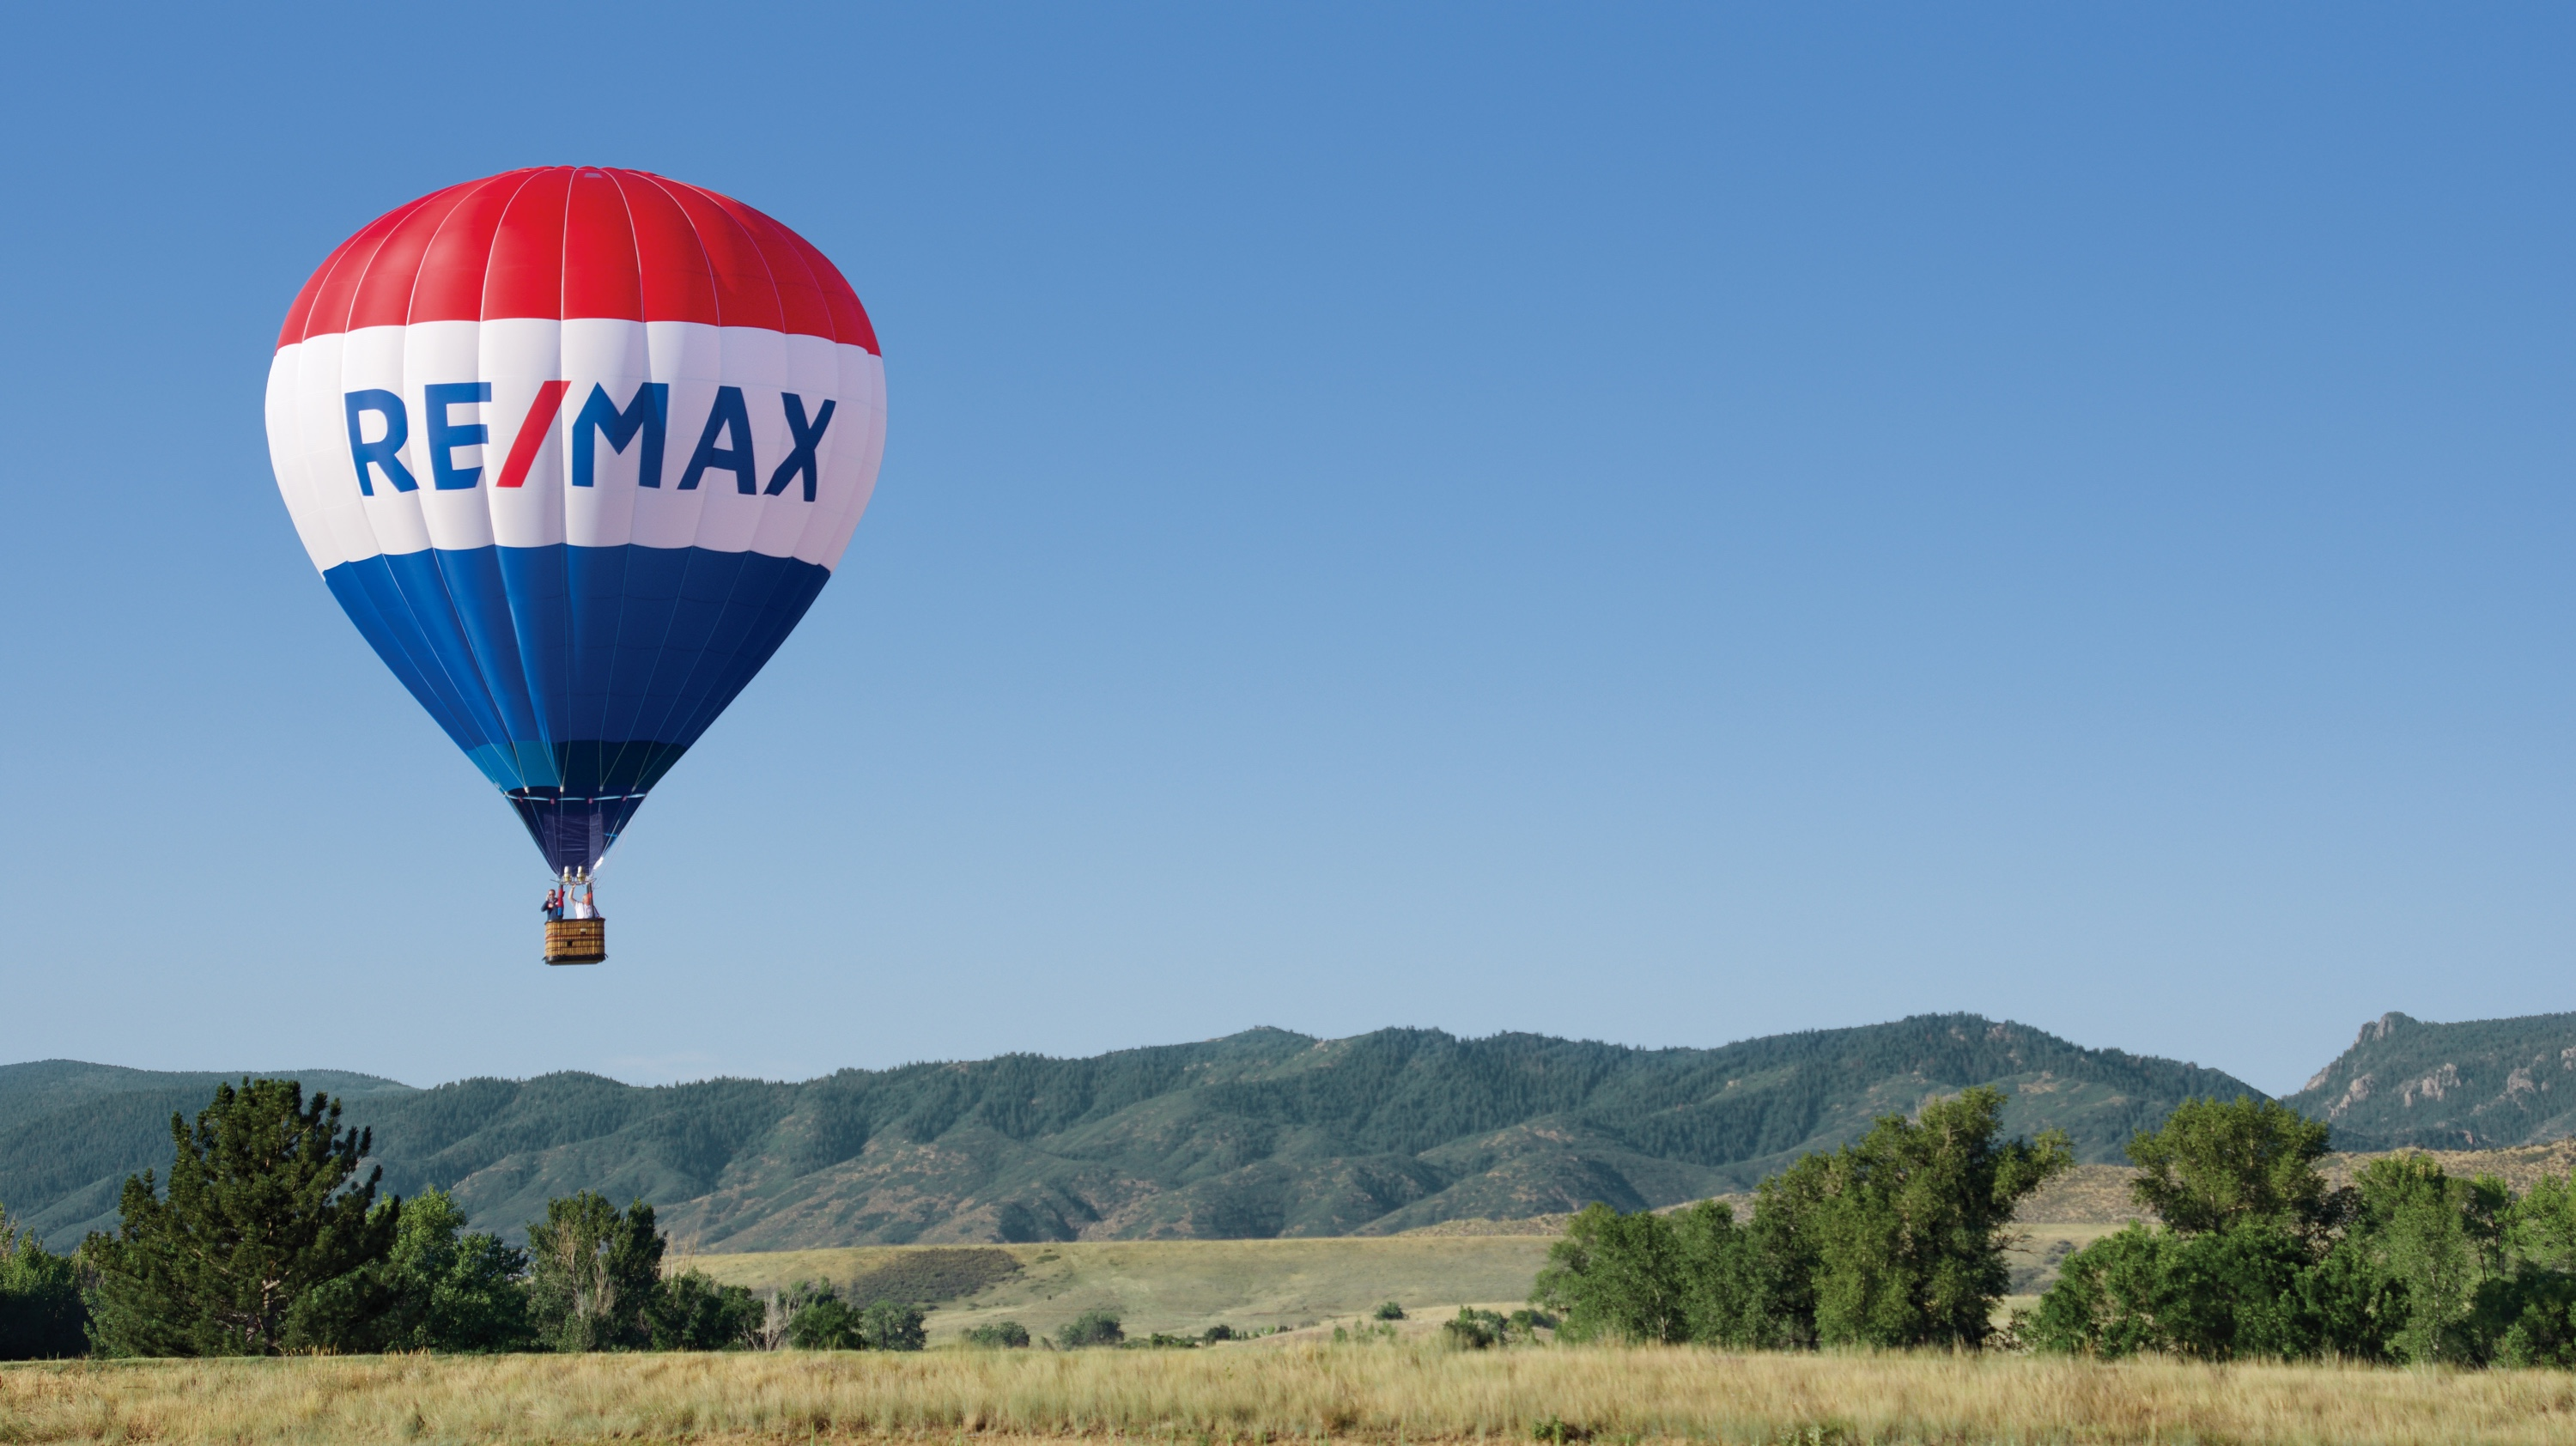 About RE/MAX